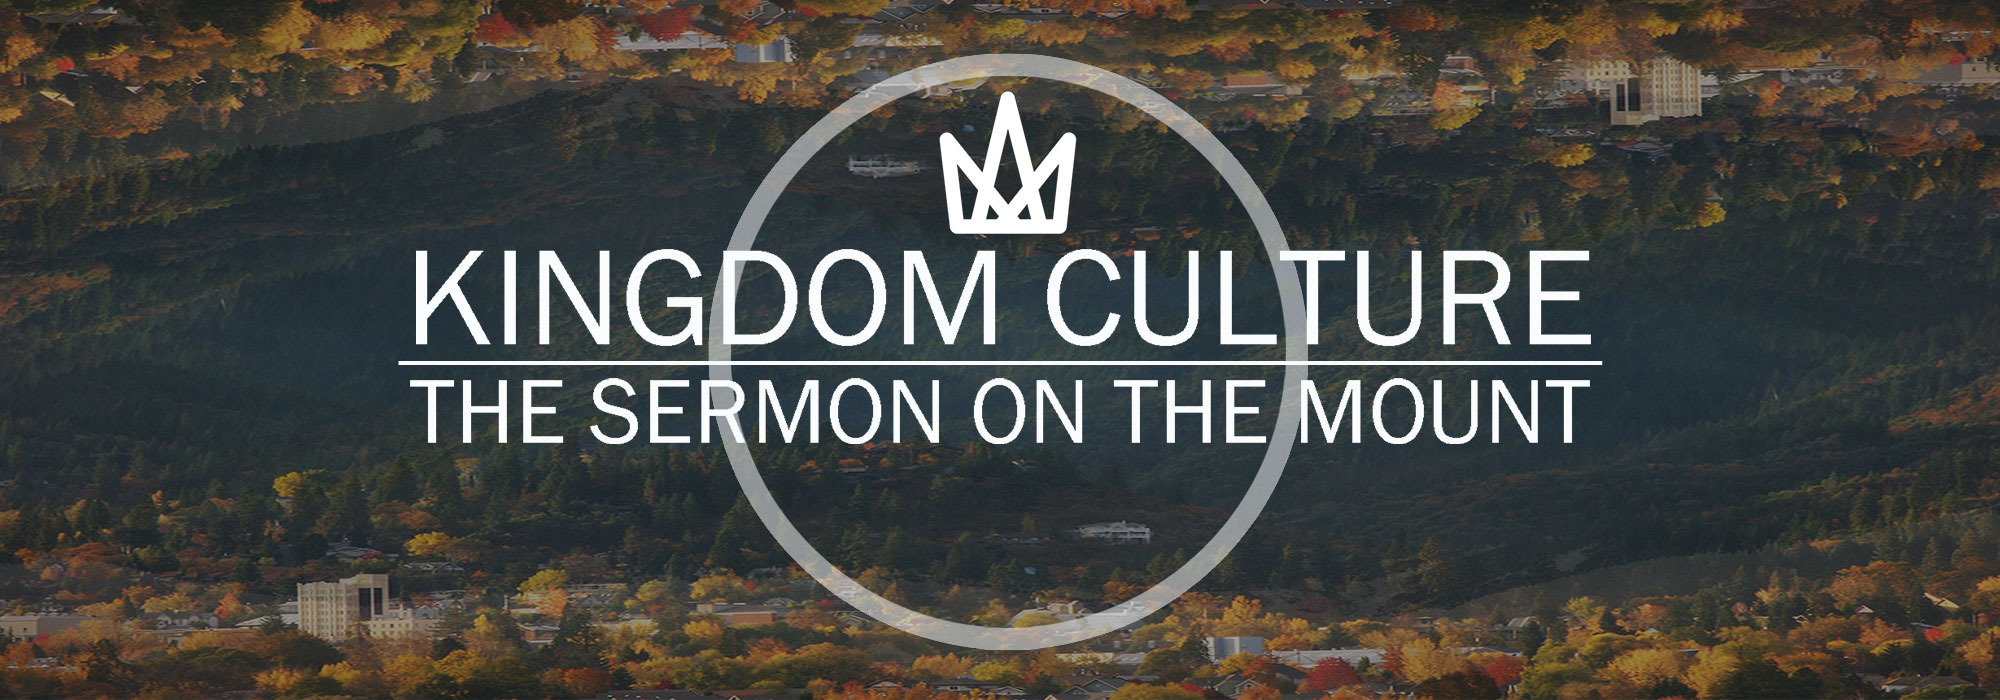 Kingdom Culture Sermon Series Graphic